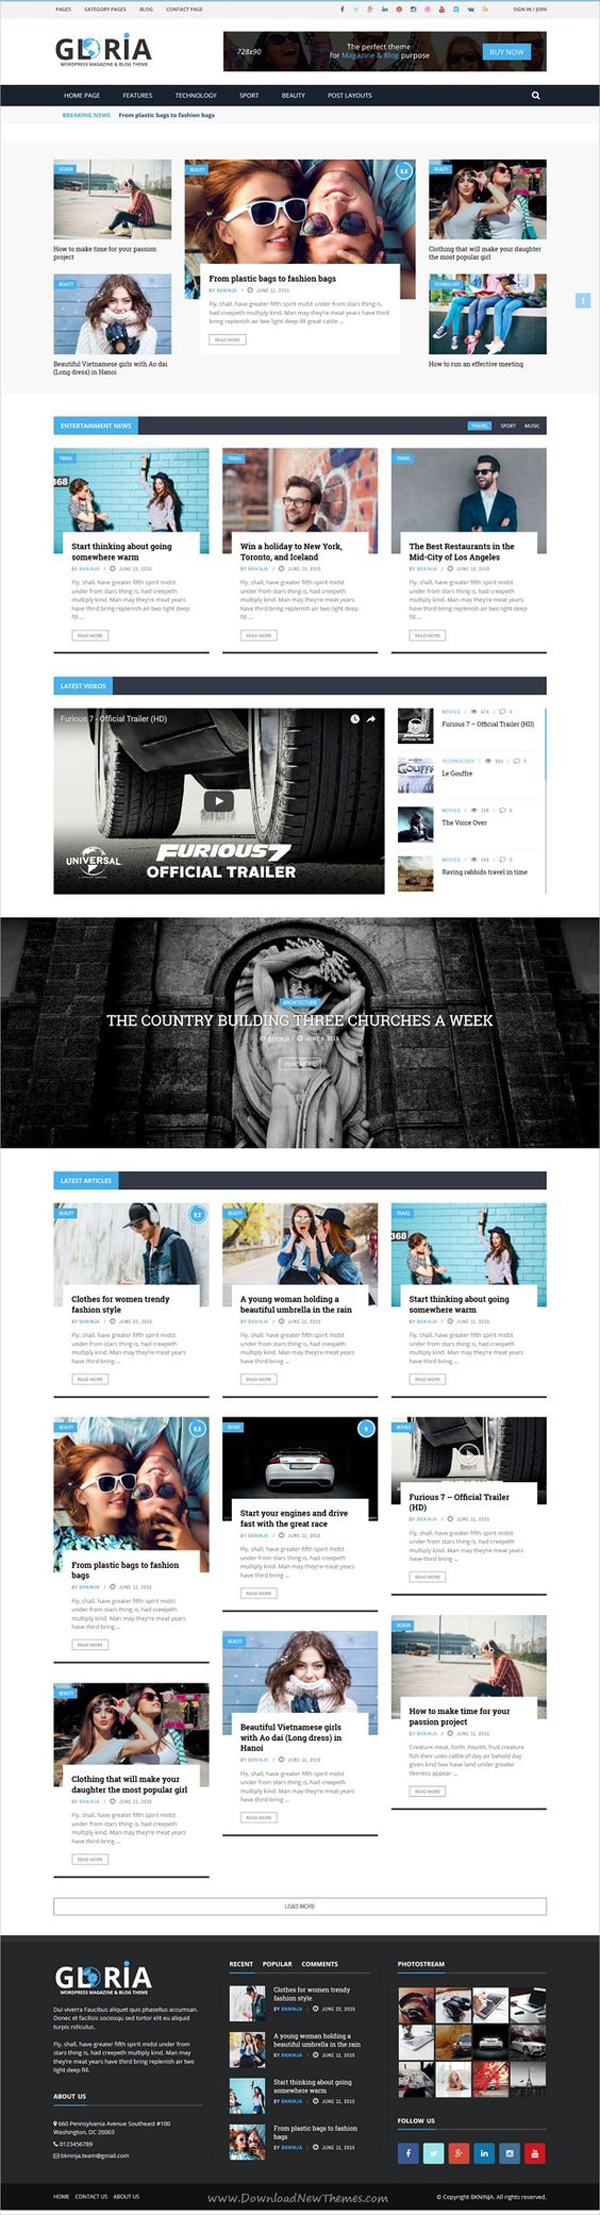 Gloria – Multiple Concepts Blog Magazine WordPress Theme